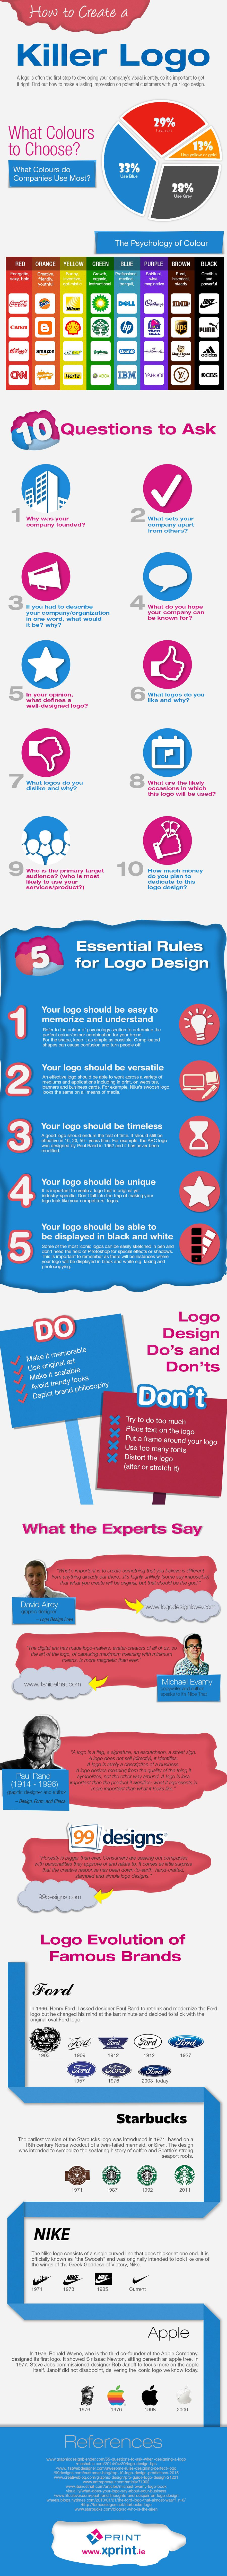 How to Create a Killer Logo [Infographic] Designed by: Xprint.ie